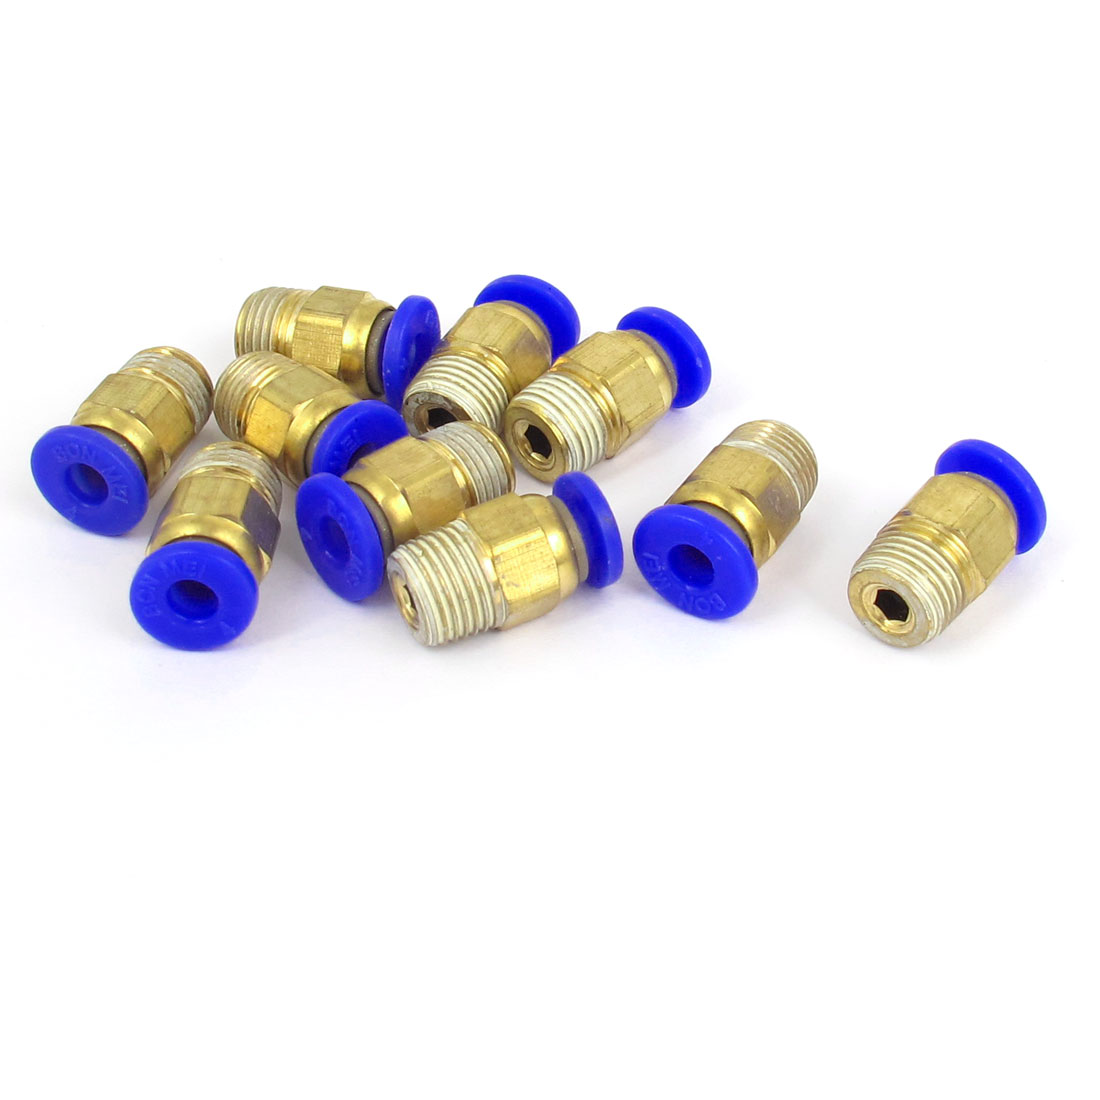 4mm Tube 1/8BSP Male Thread Quick Air Fitting Coupler Connector 10pcs